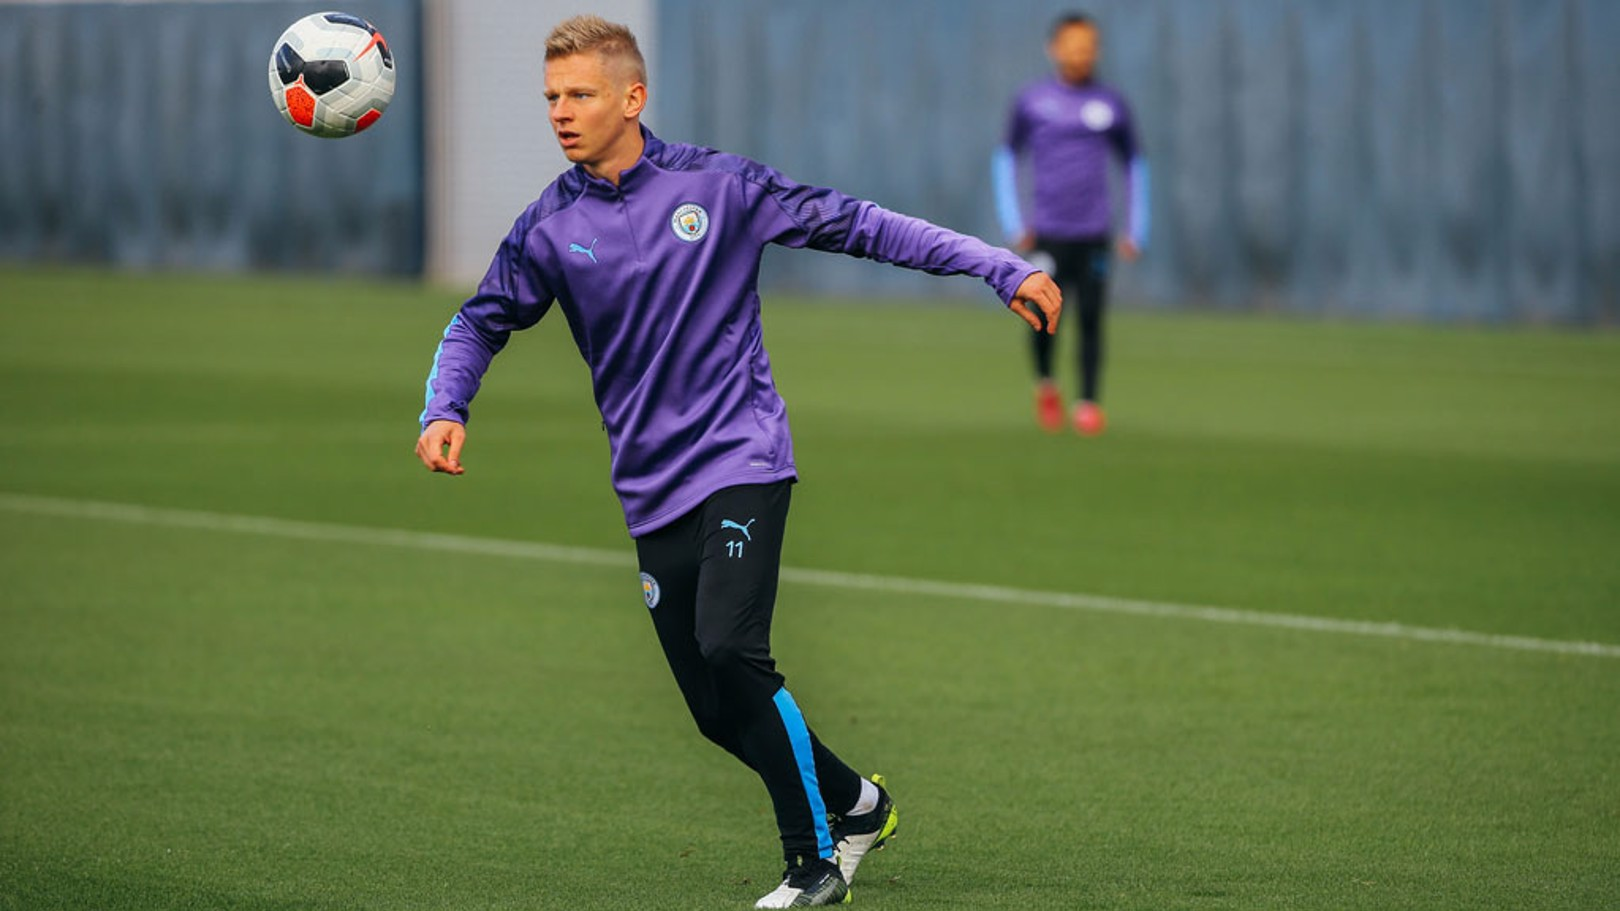 INJURY UPDATE: Zinchenko is out of our game against Atalanta